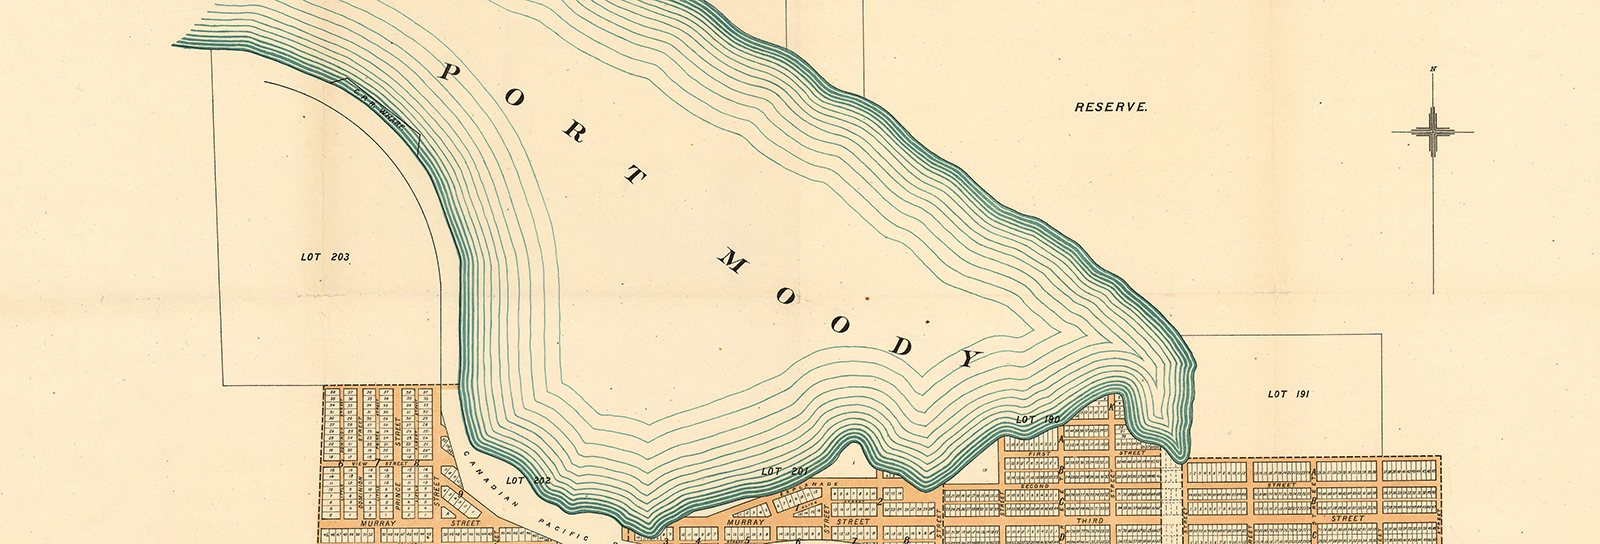 Heritage map of Port Moody